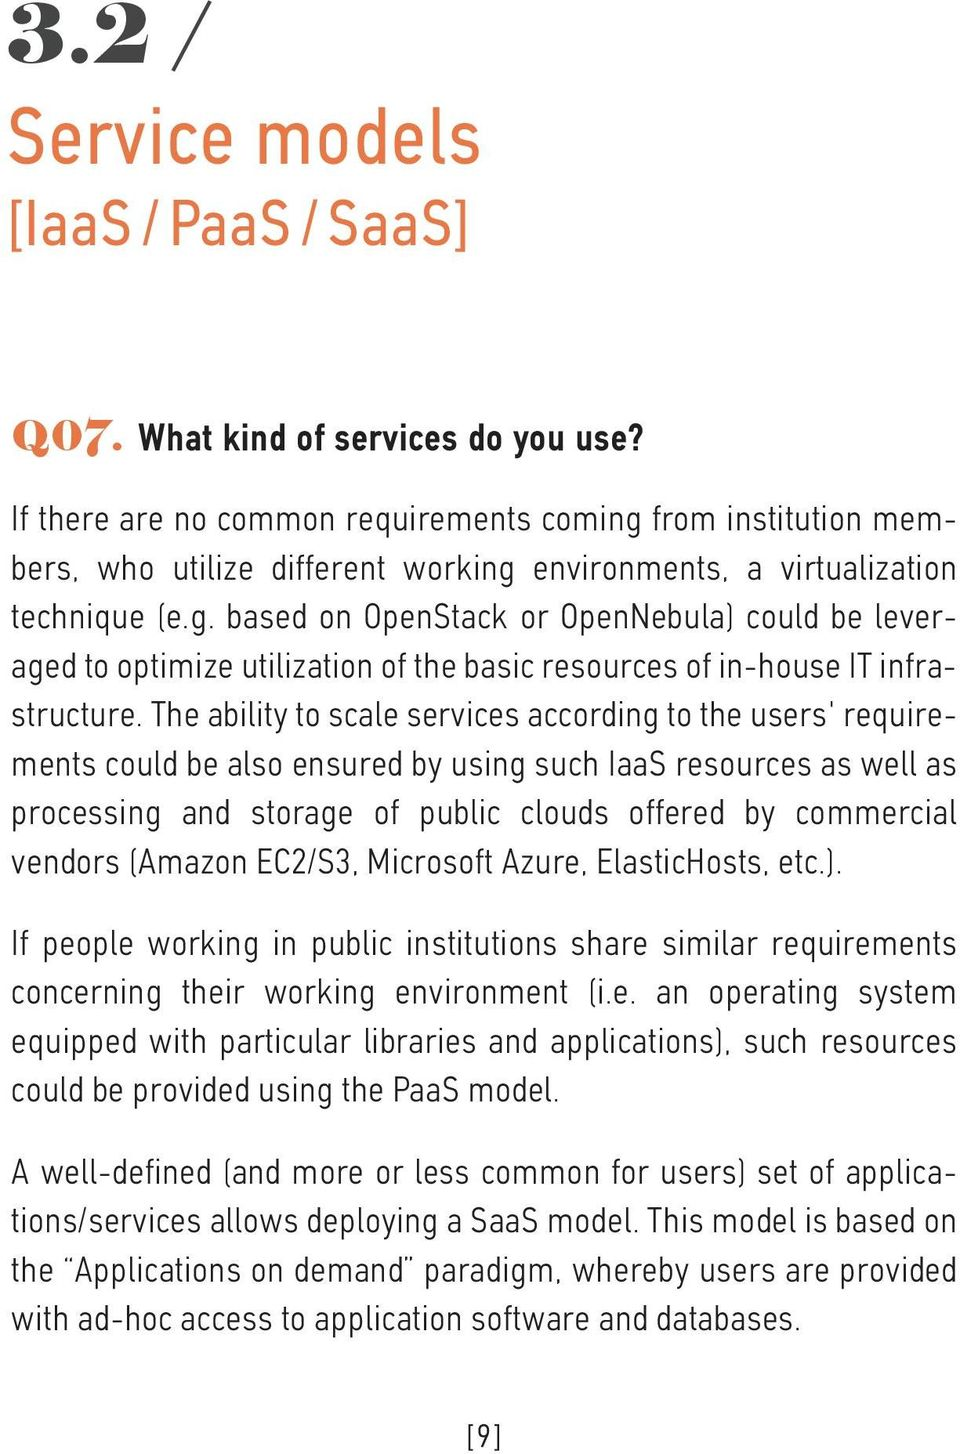 The ability to scale services according to the users' requirements could be also ensured by using such IaaS resources as well as processing and storage of public clouds offered by commercial vendors